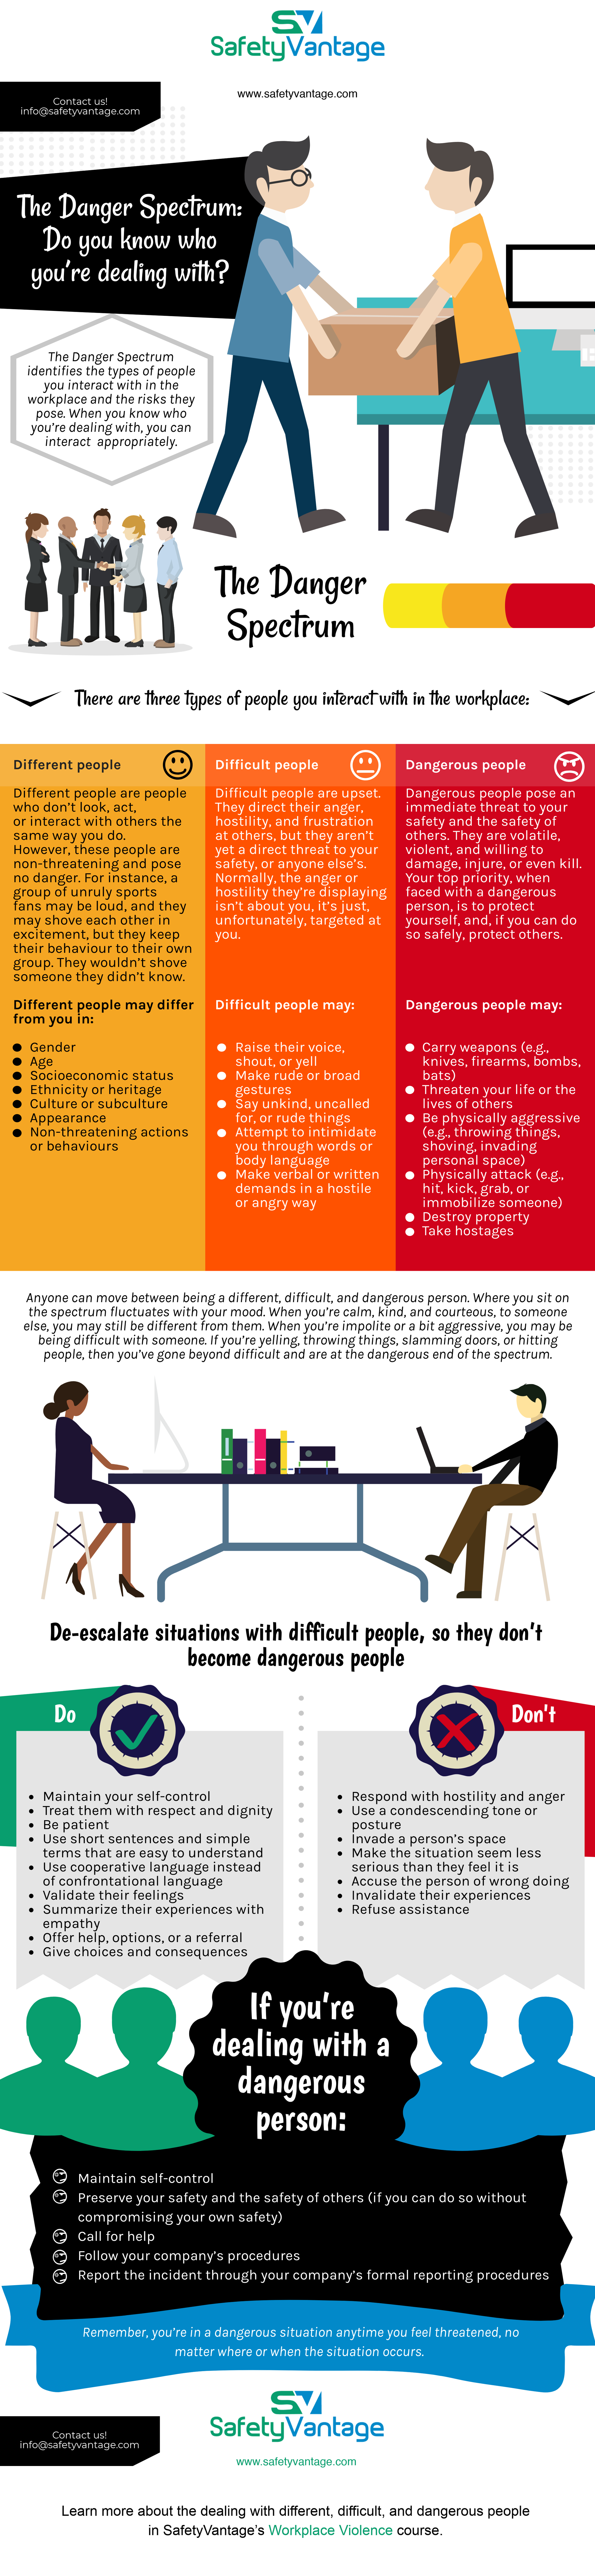 Infographic on Workplace interactions and risks. Use the danger spectrum to know who you're dealing with and interact appropriately.